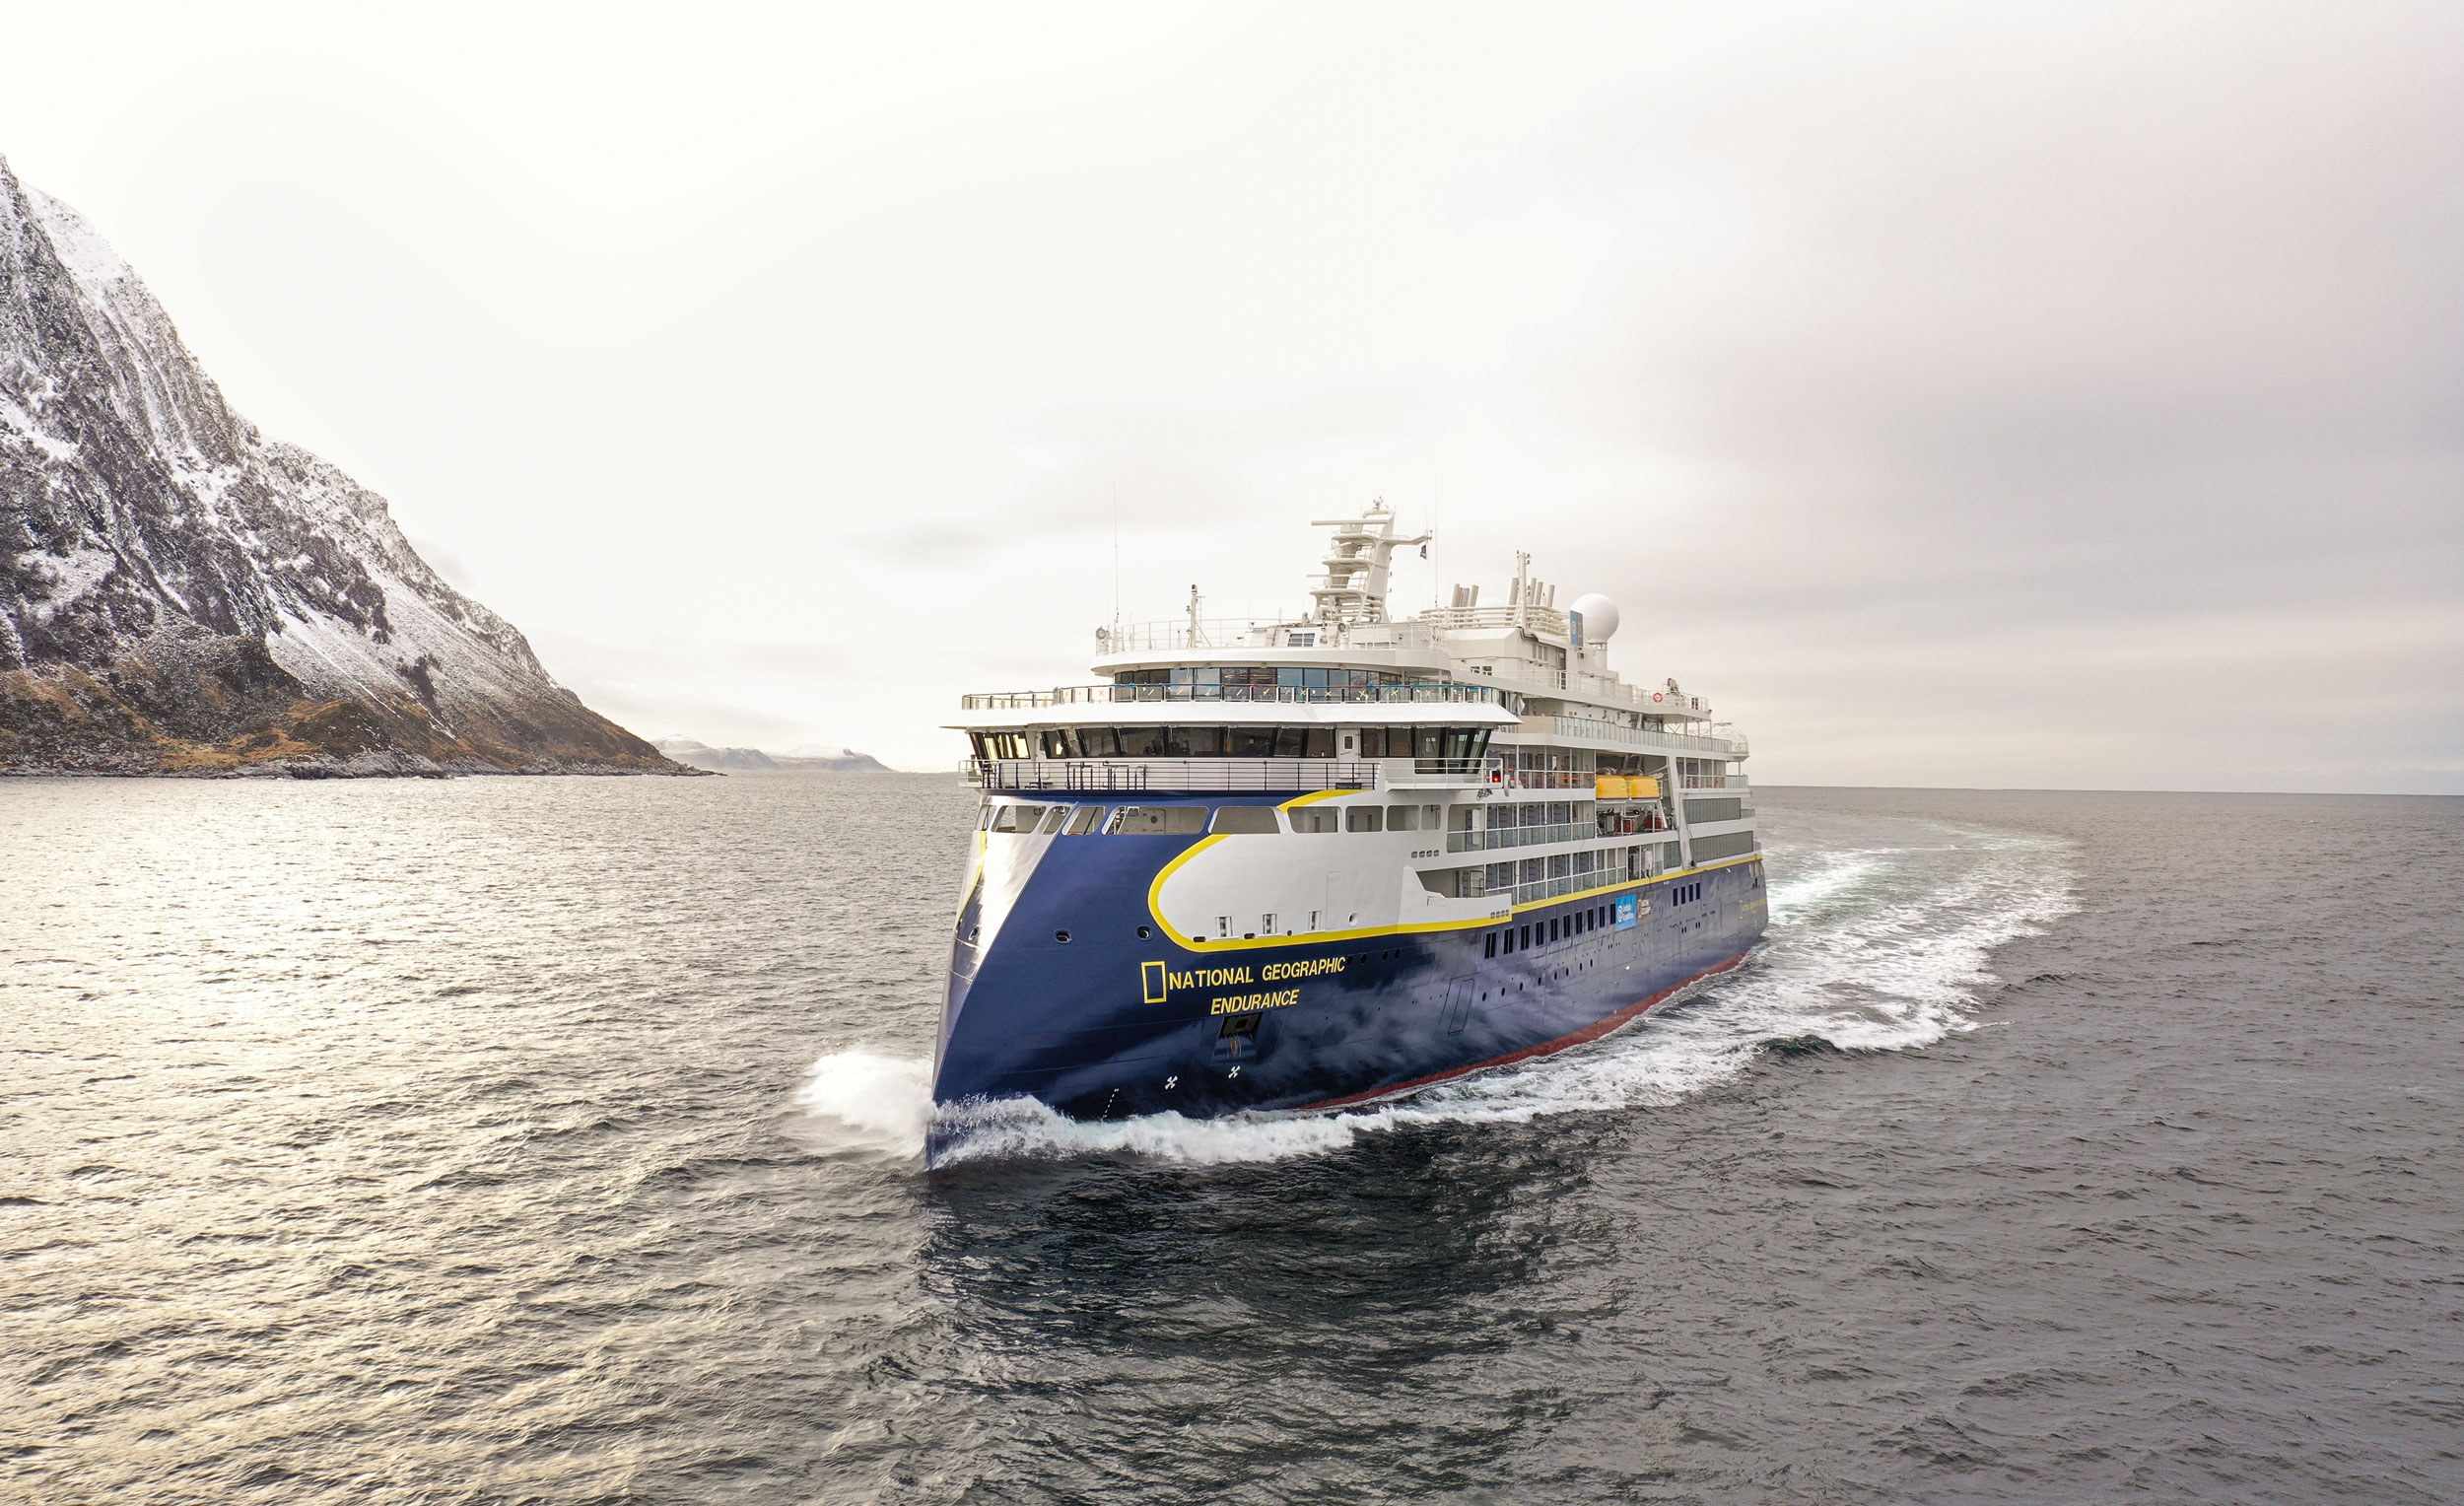 The 'NatGeo Resolution' is the sister ship to the 'NatGeo Endurance', and proves how a design feature such as the X-BOW, originally developed for other segments, can be successfully used in new market areas. Photo: Uavpic.com